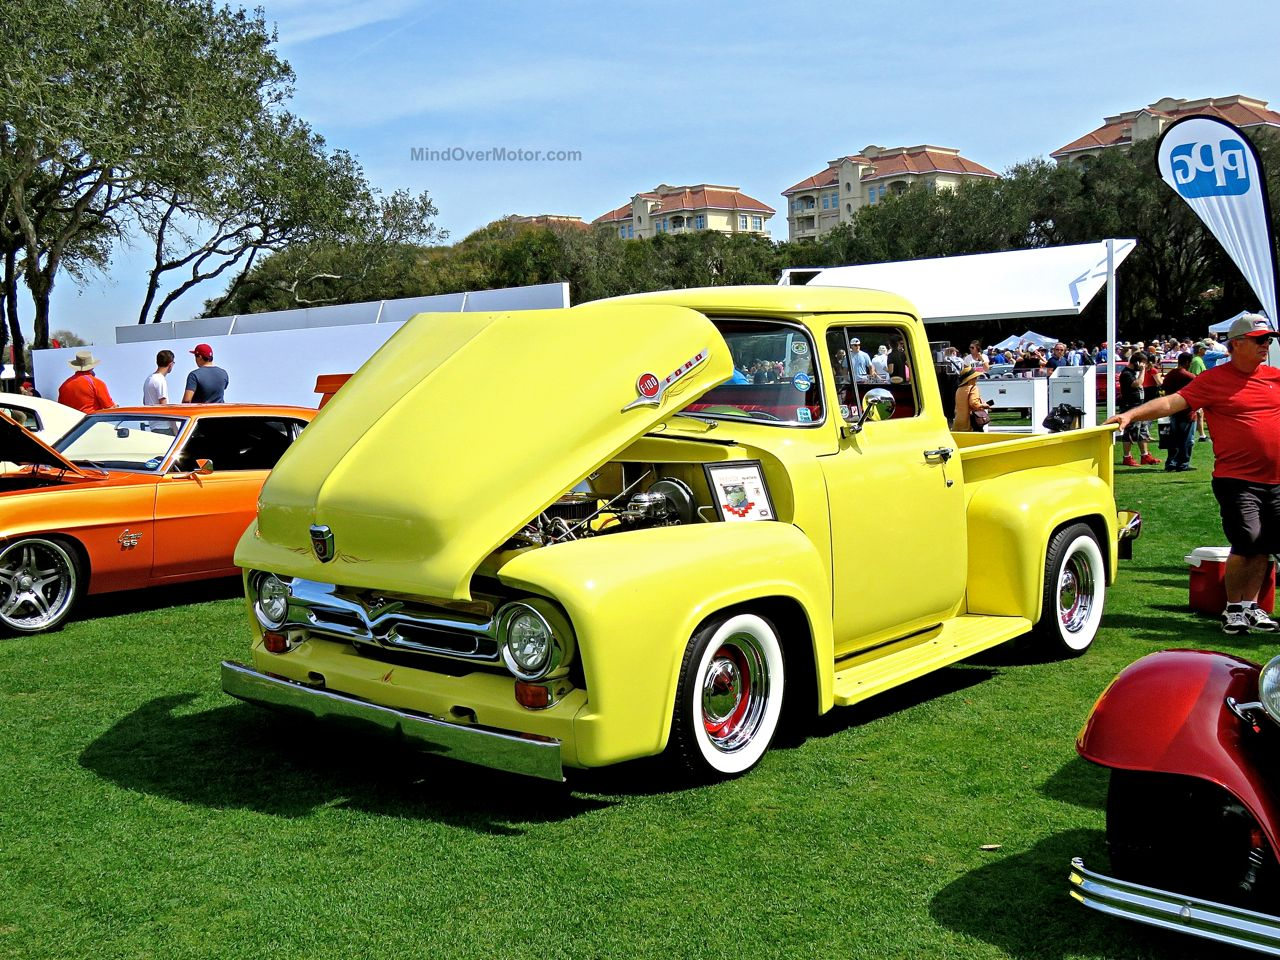 Custom Ford F-100 at Amelia Island 1